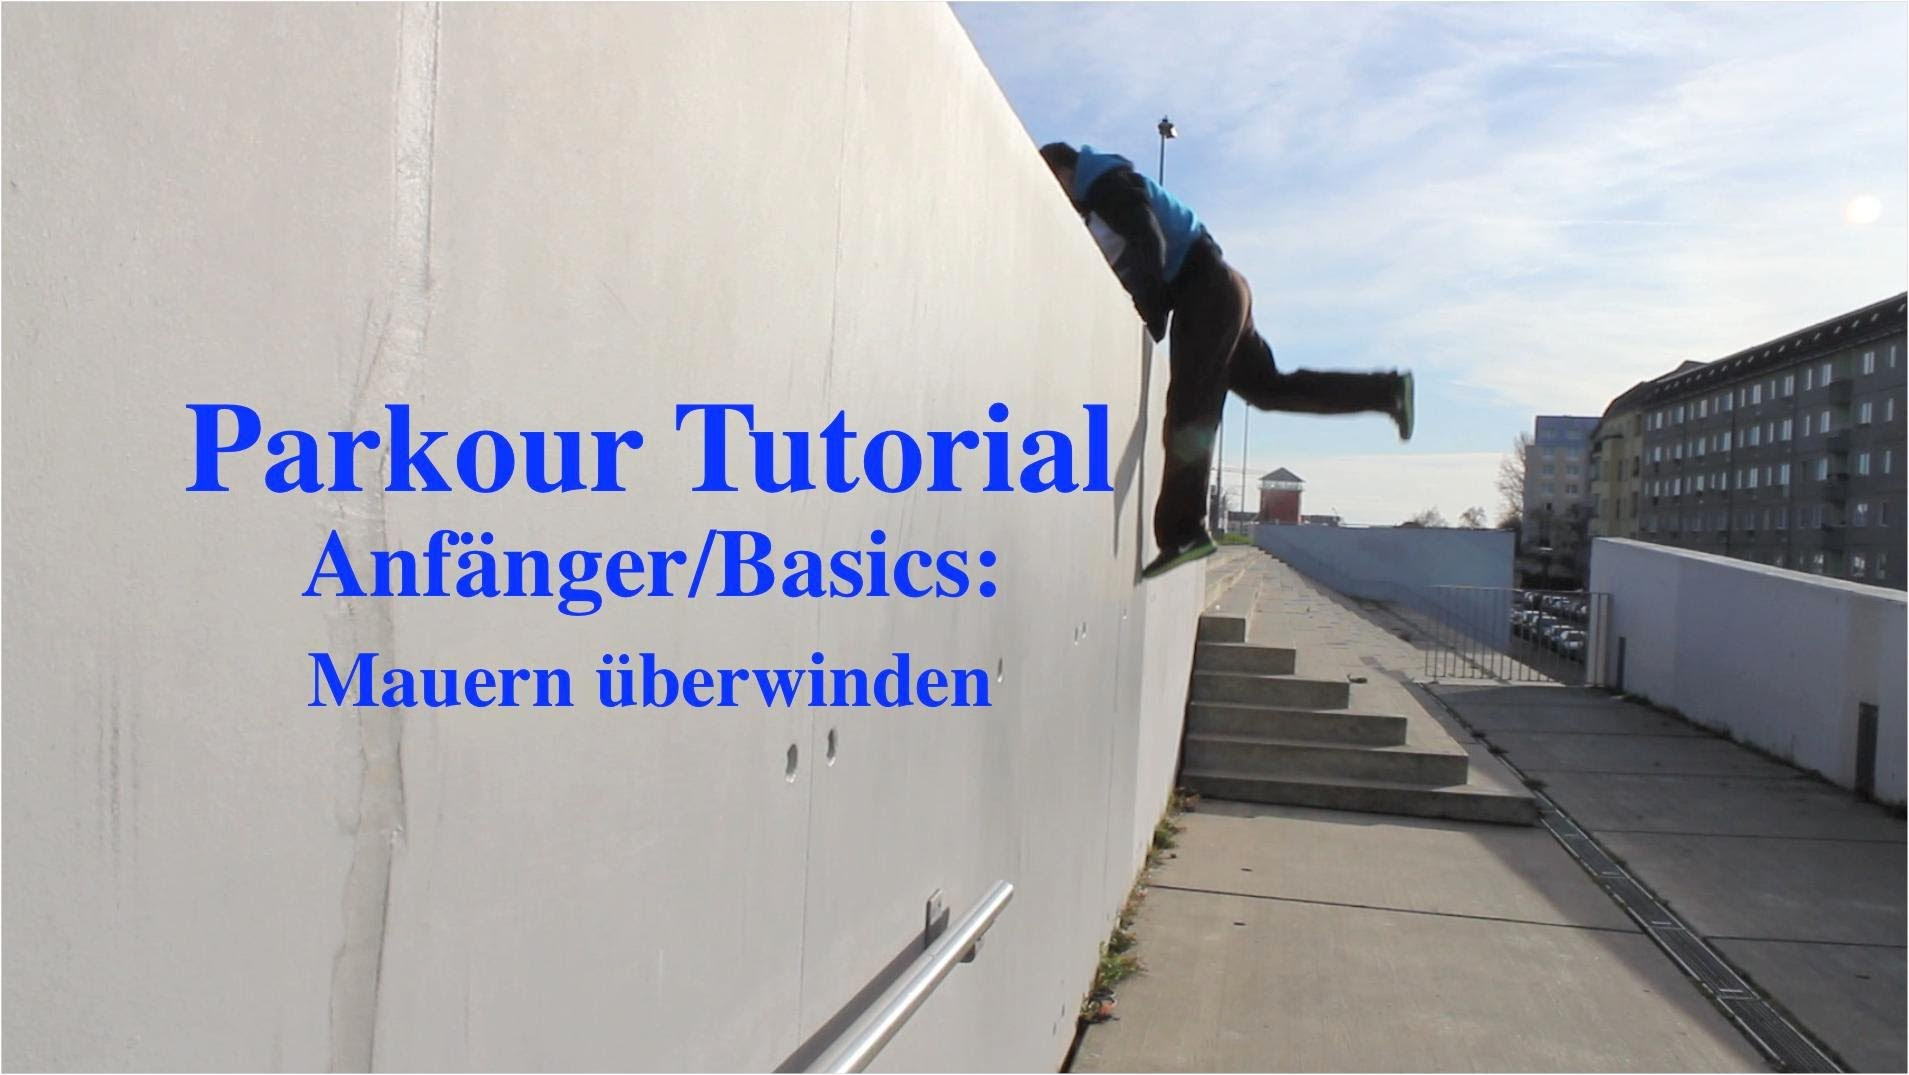 parkour tutorial anf nger basics mauern berwinden deutsch english sub german akademie. Black Bedroom Furniture Sets. Home Design Ideas